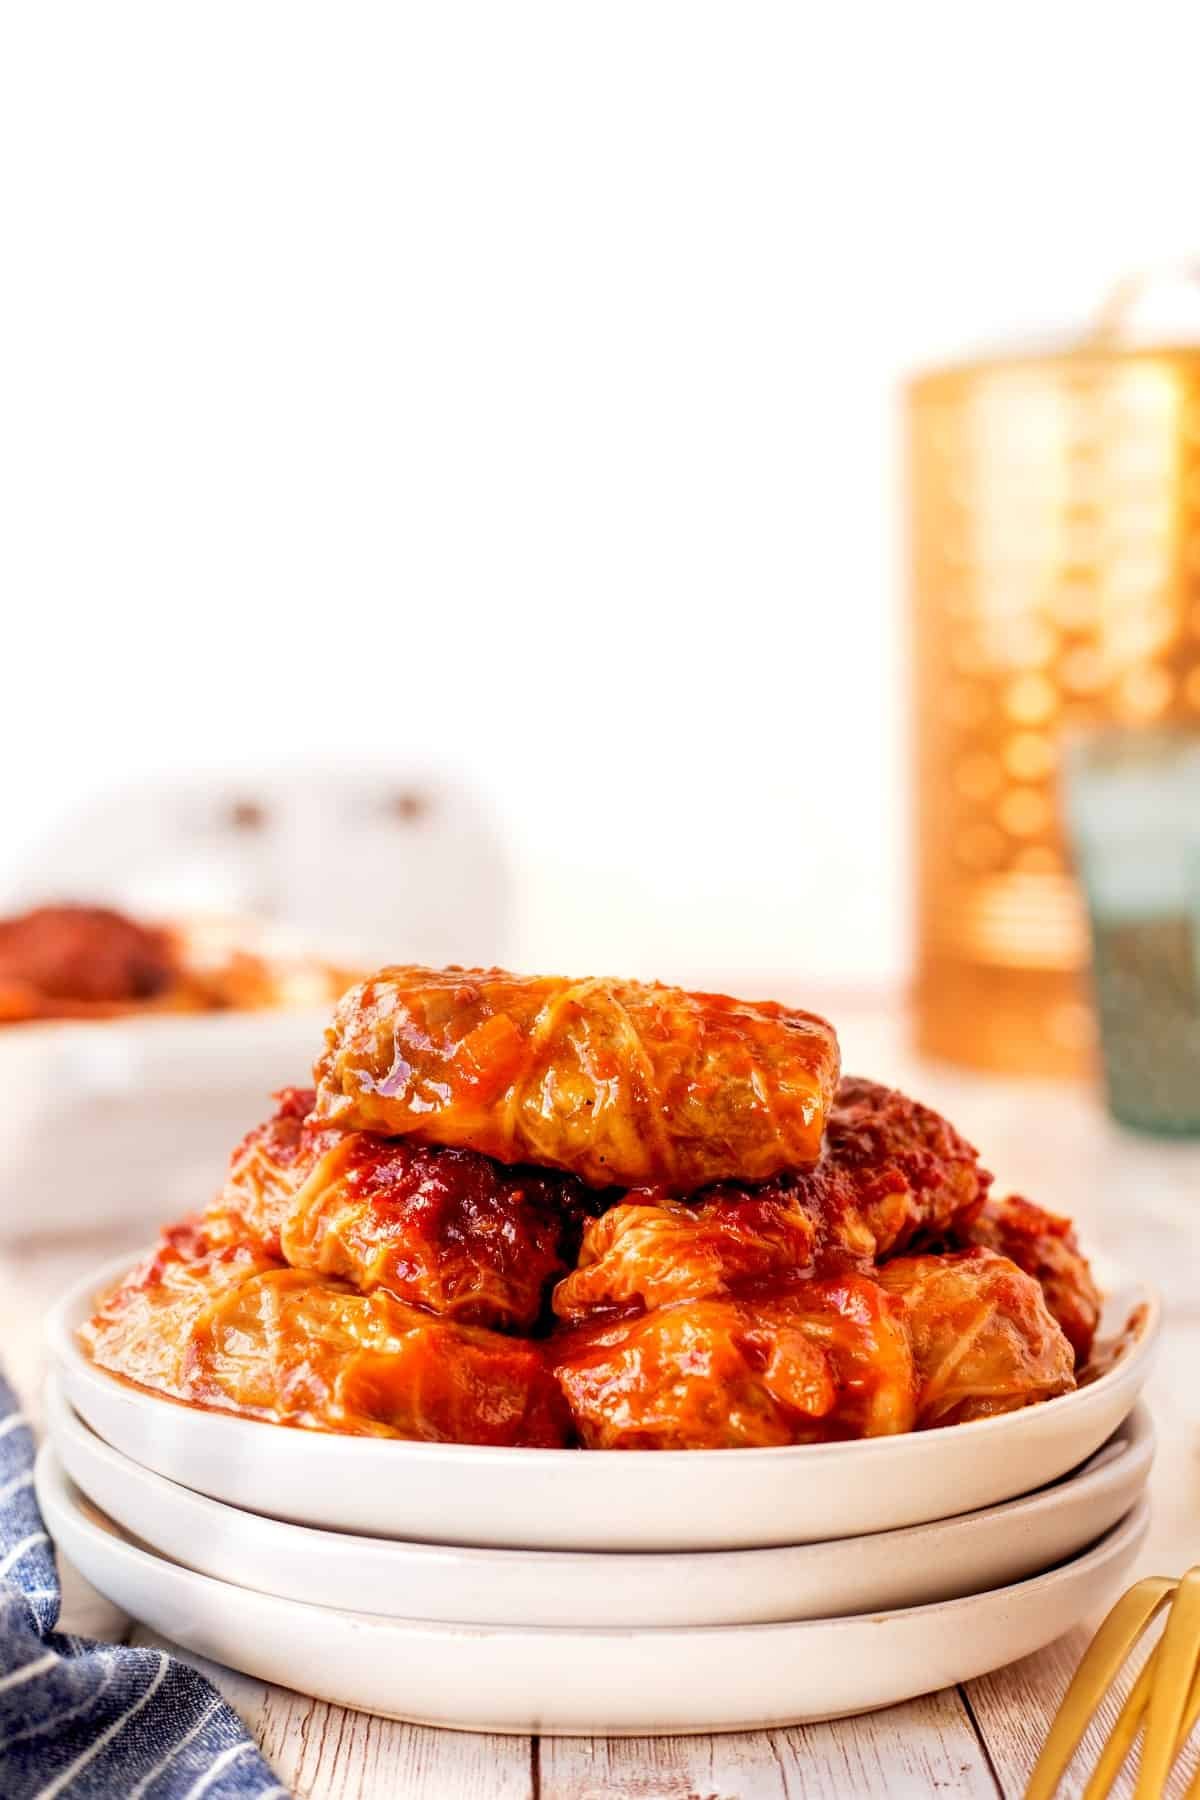 Cabbage rolls stacked on white plates.